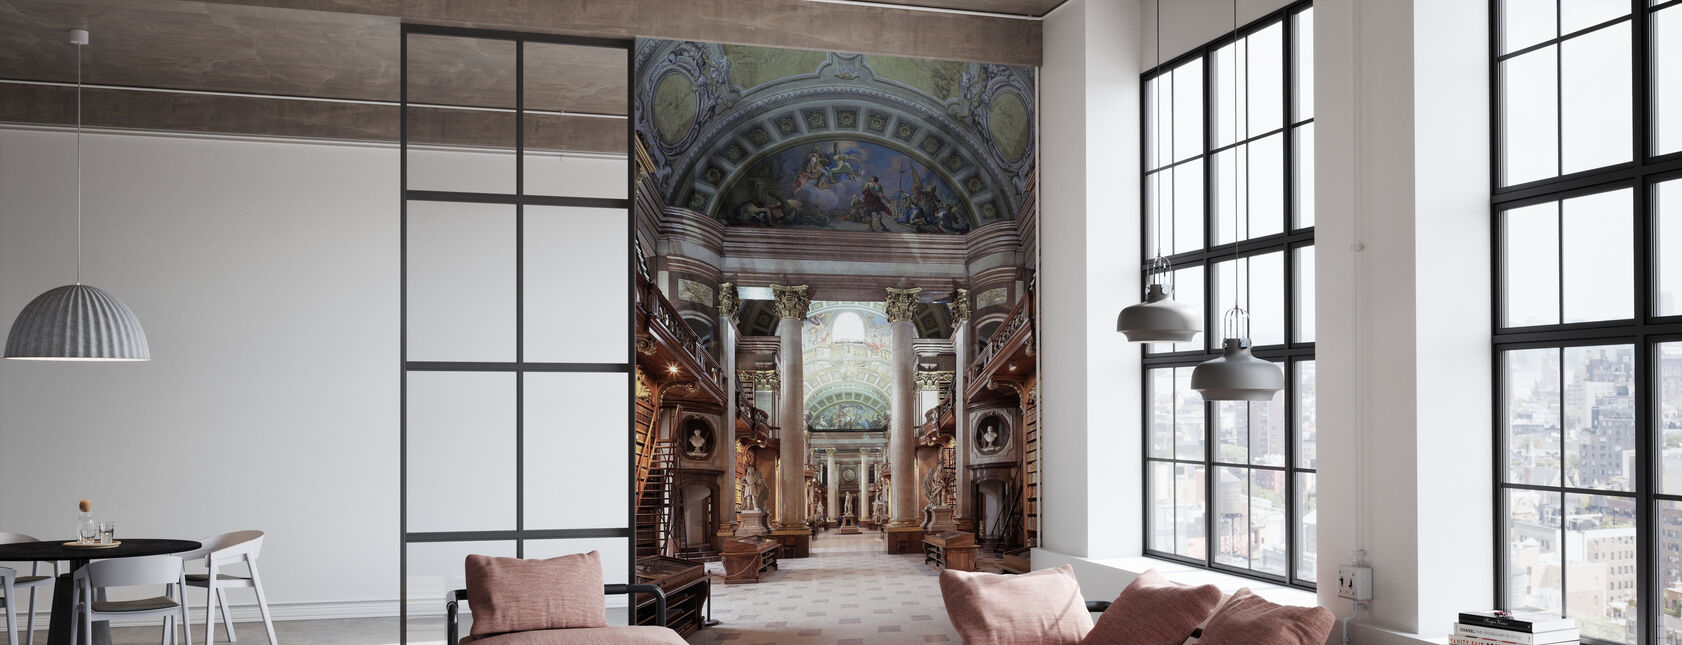 Imperial Library in Wien - Wallpaper - Office